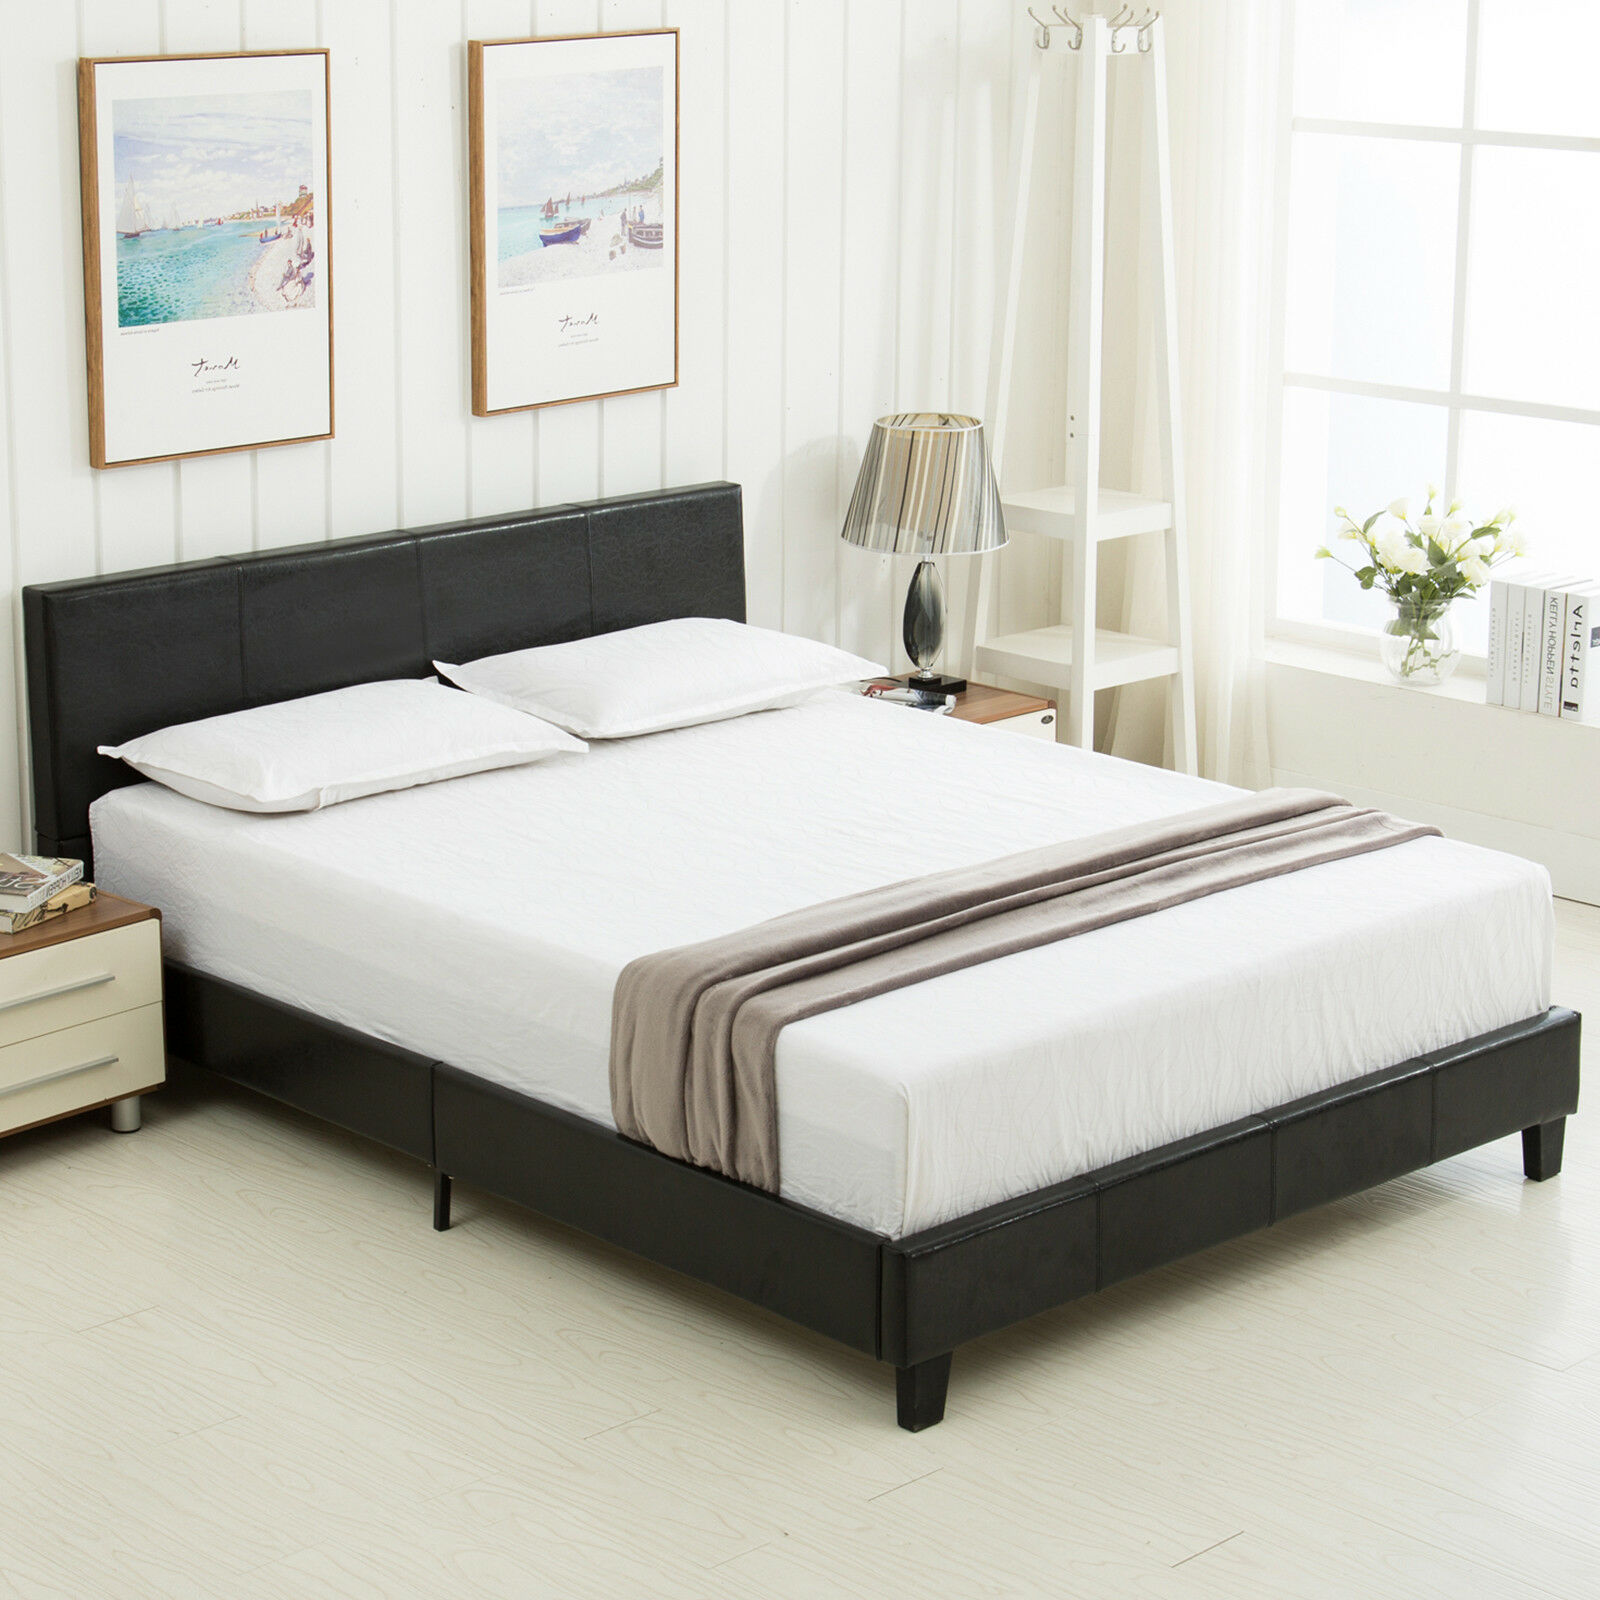 Premier Zurich Faux Leather Queen Black Upholstered Platform Bed Frame With For Sale Online Ebay